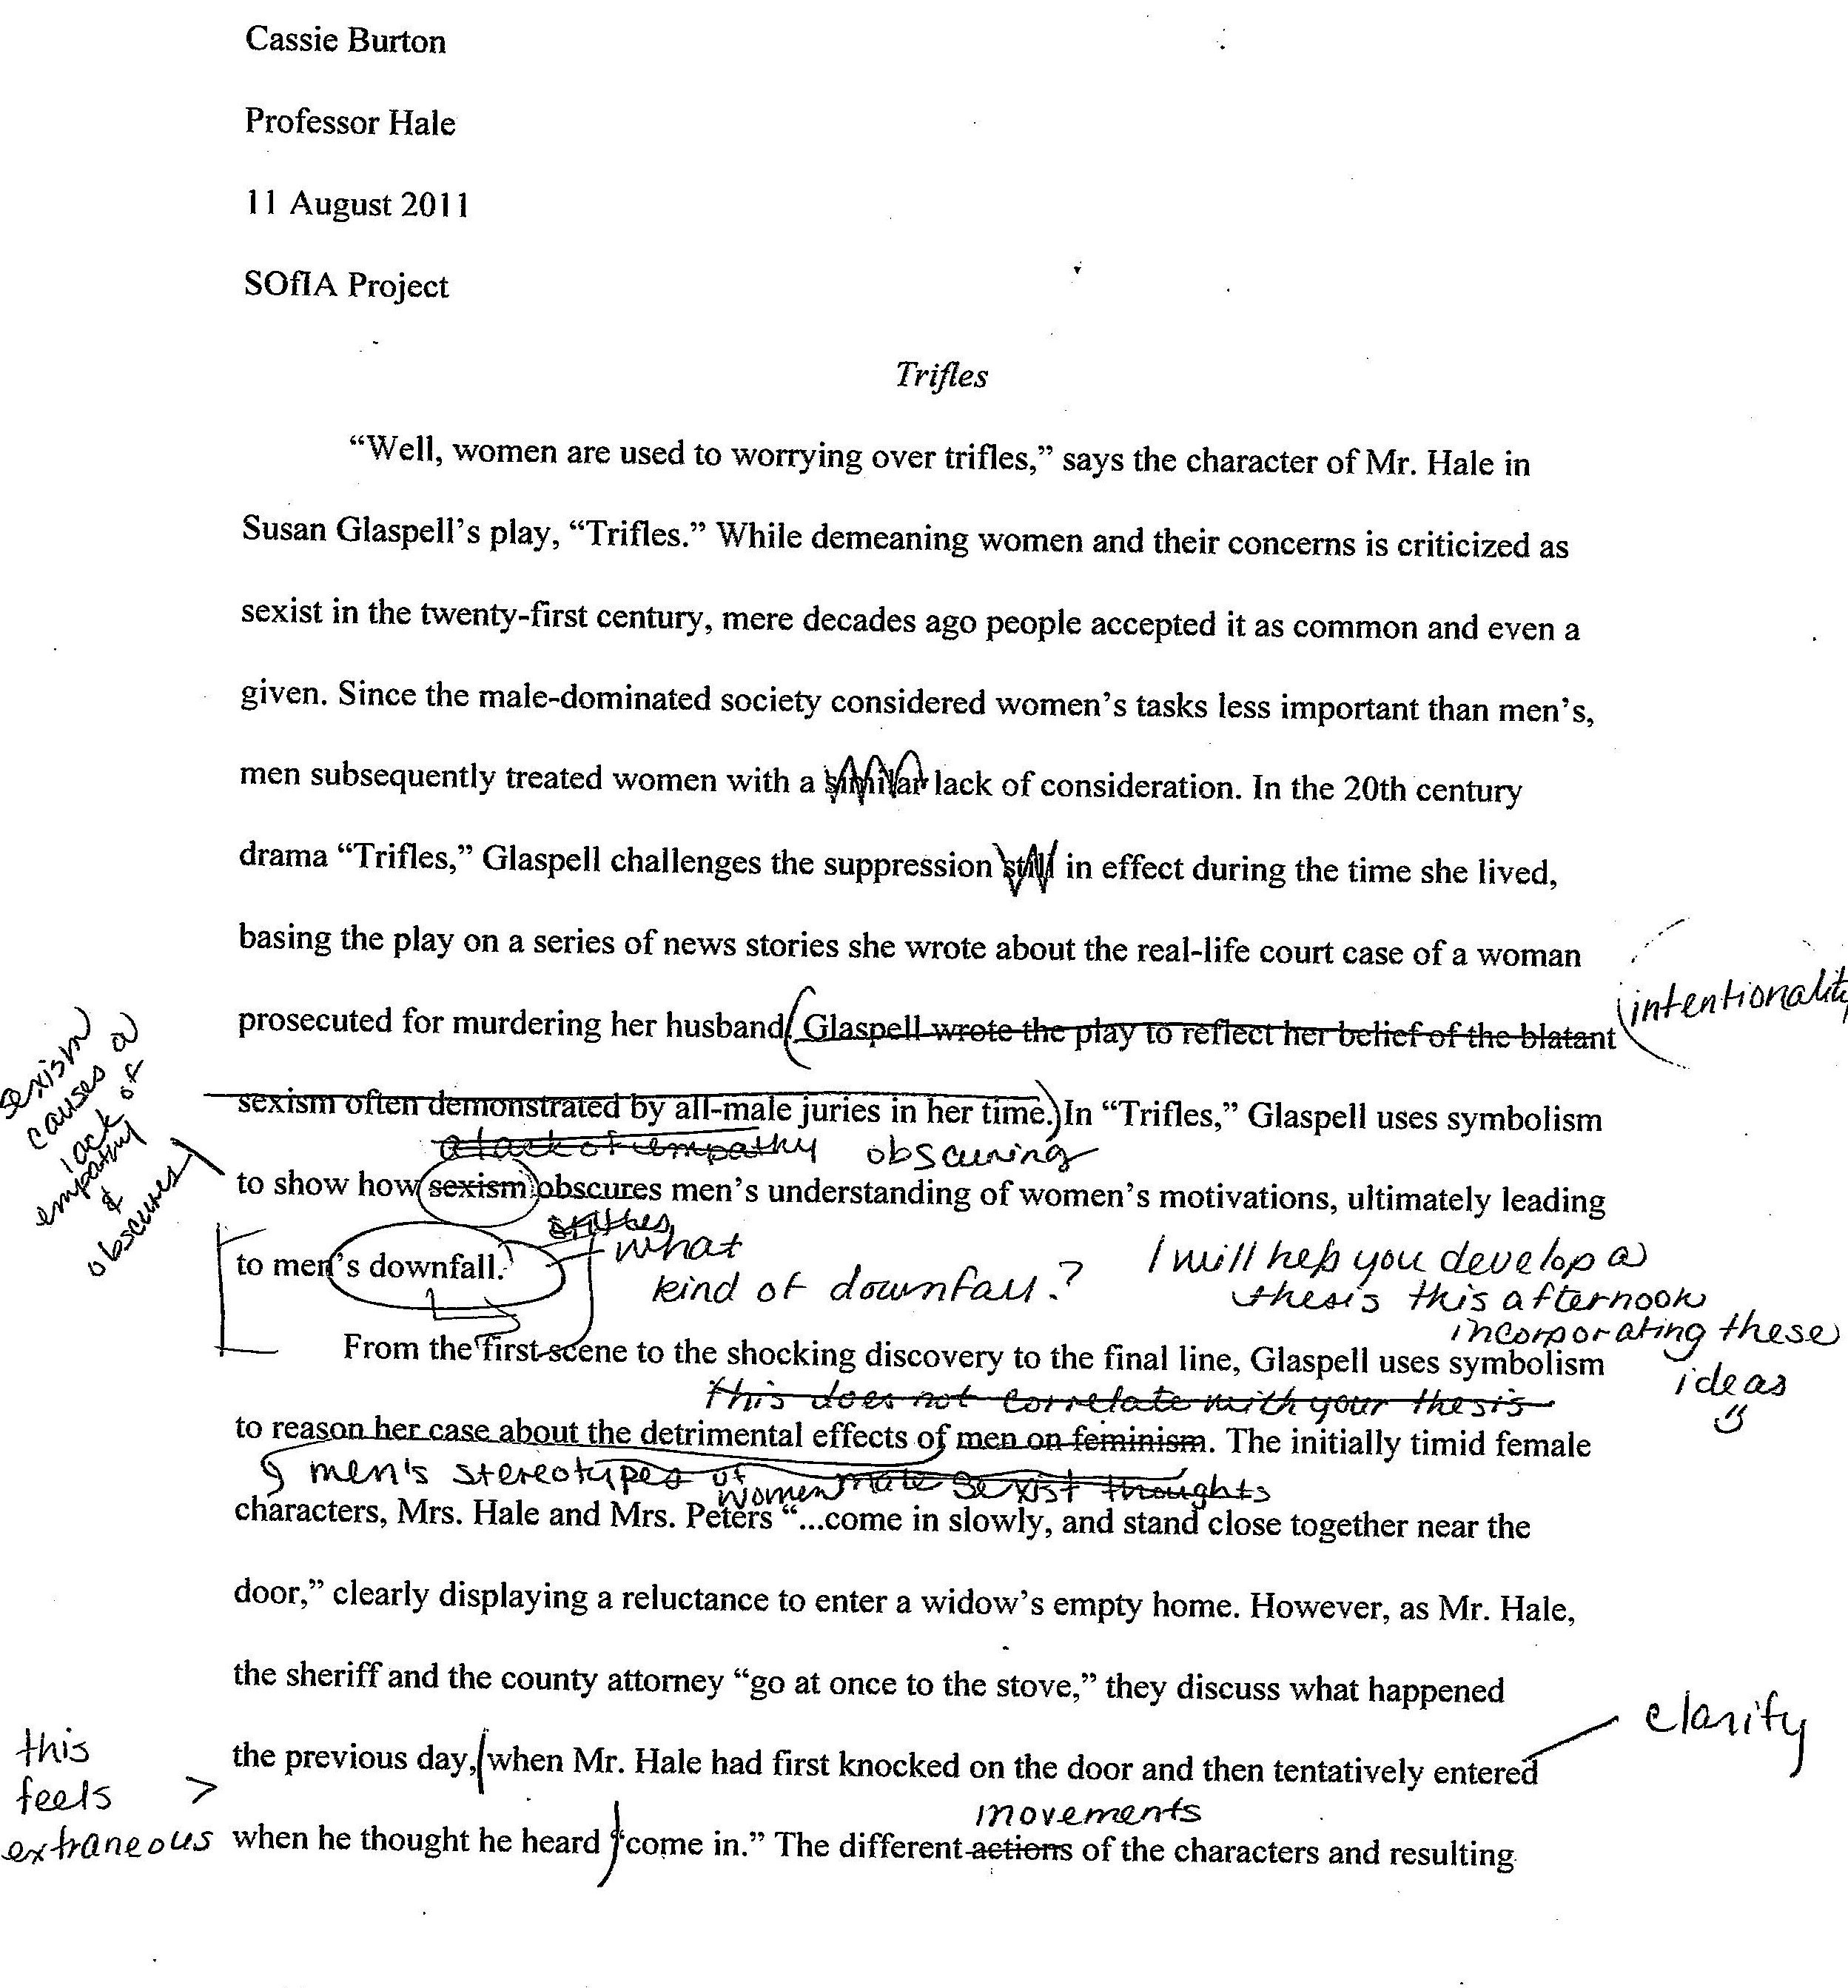 symbolism essay examples trifles by susan glaspell students  trifles by susan glaspell students teaching english paper strategies second peer edit page 1